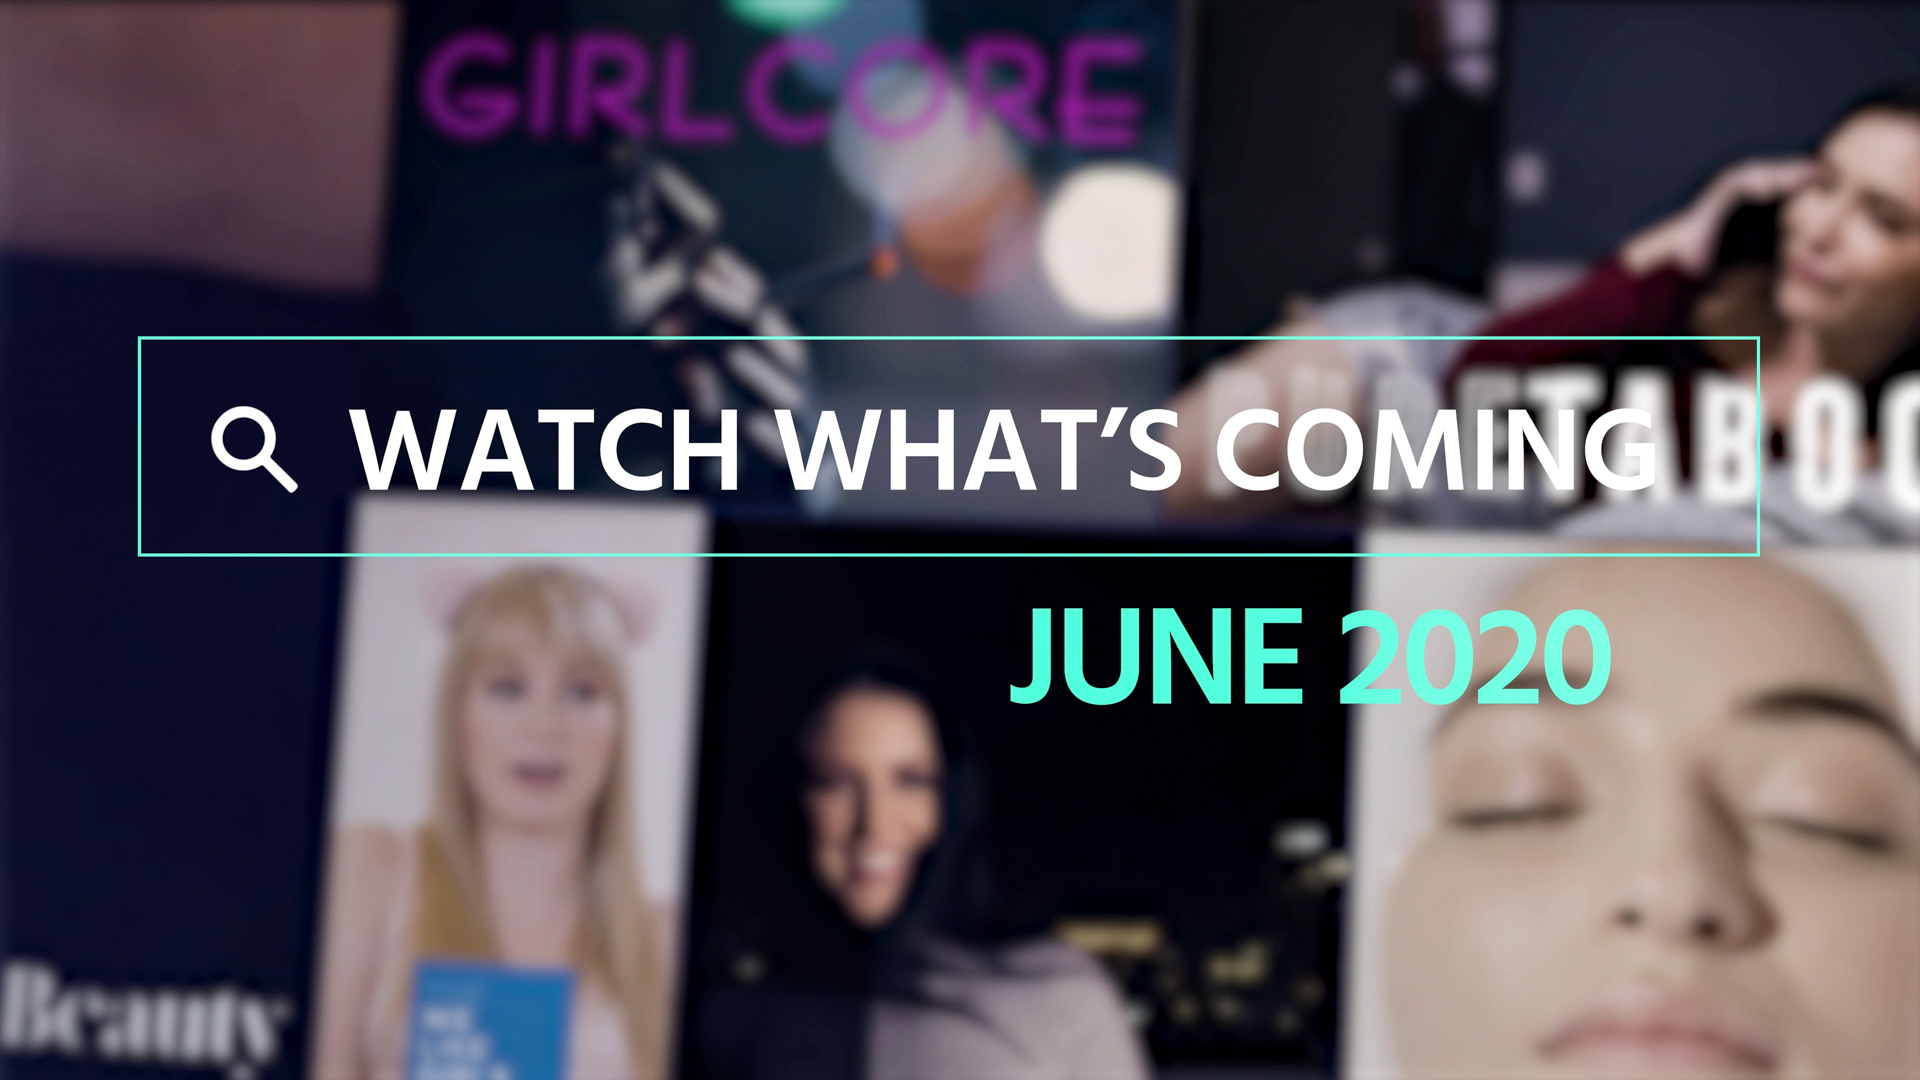 Watch What's Coming | June 2020 1